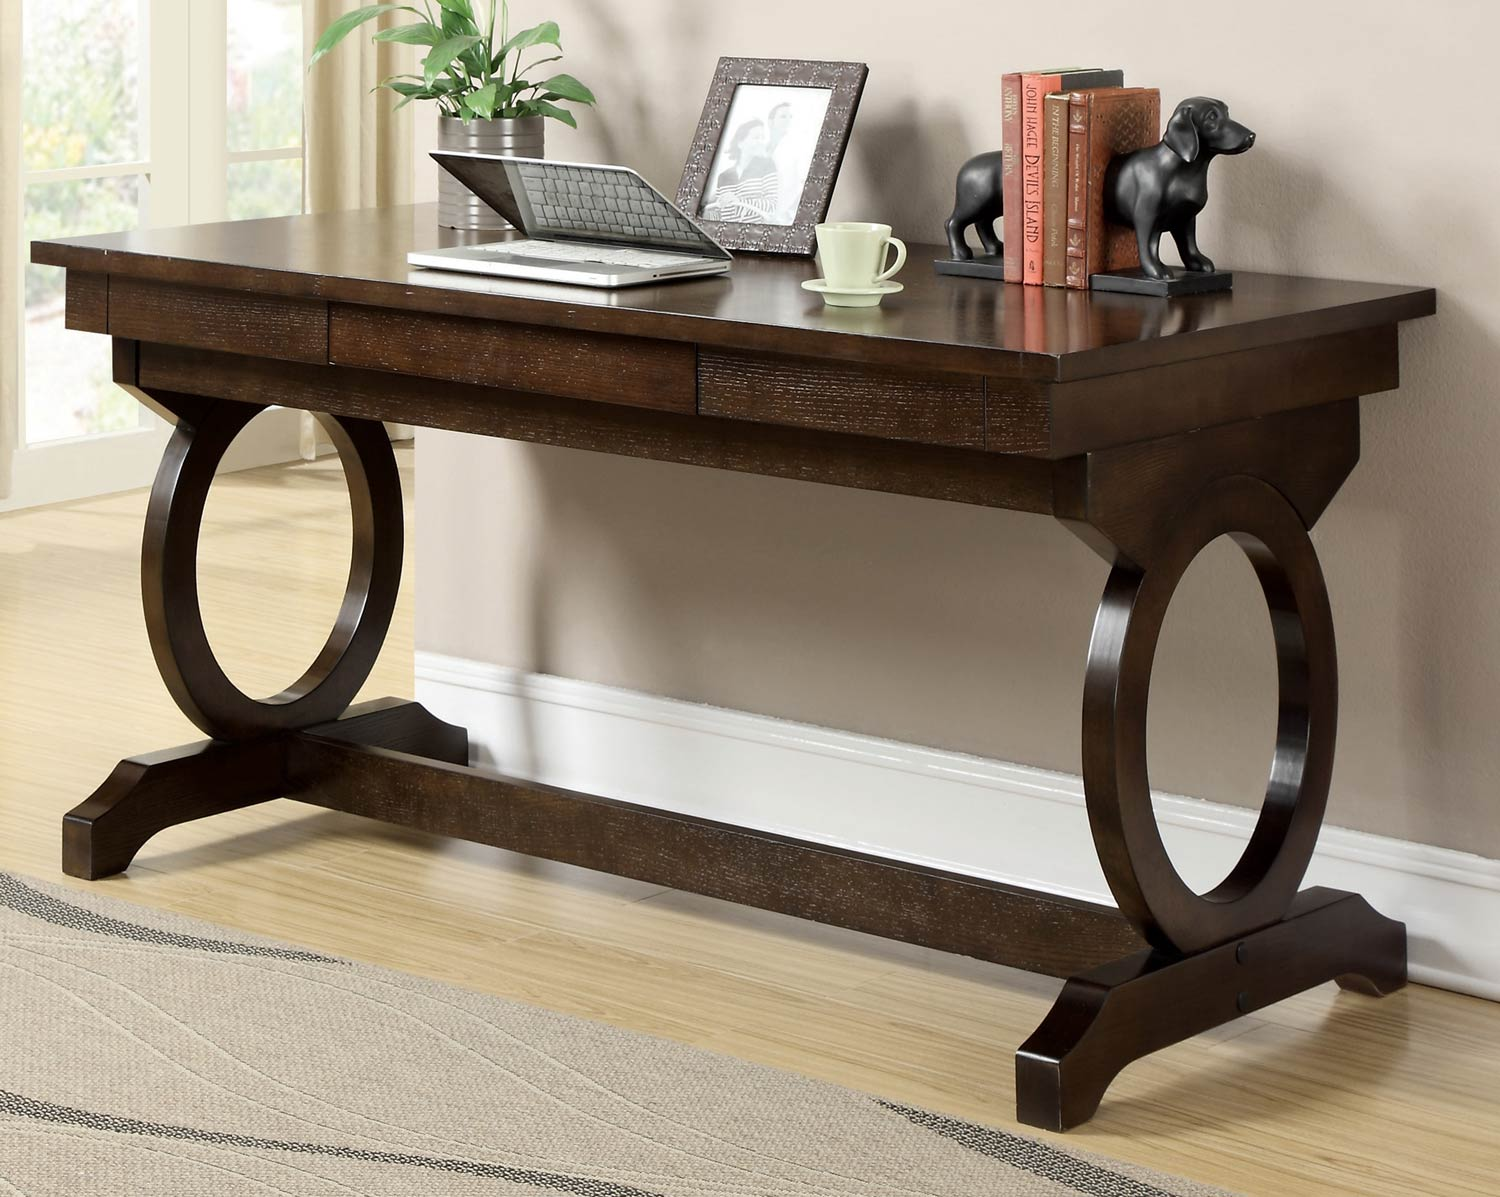 Coaster Enedina Office Desk - Chestnut